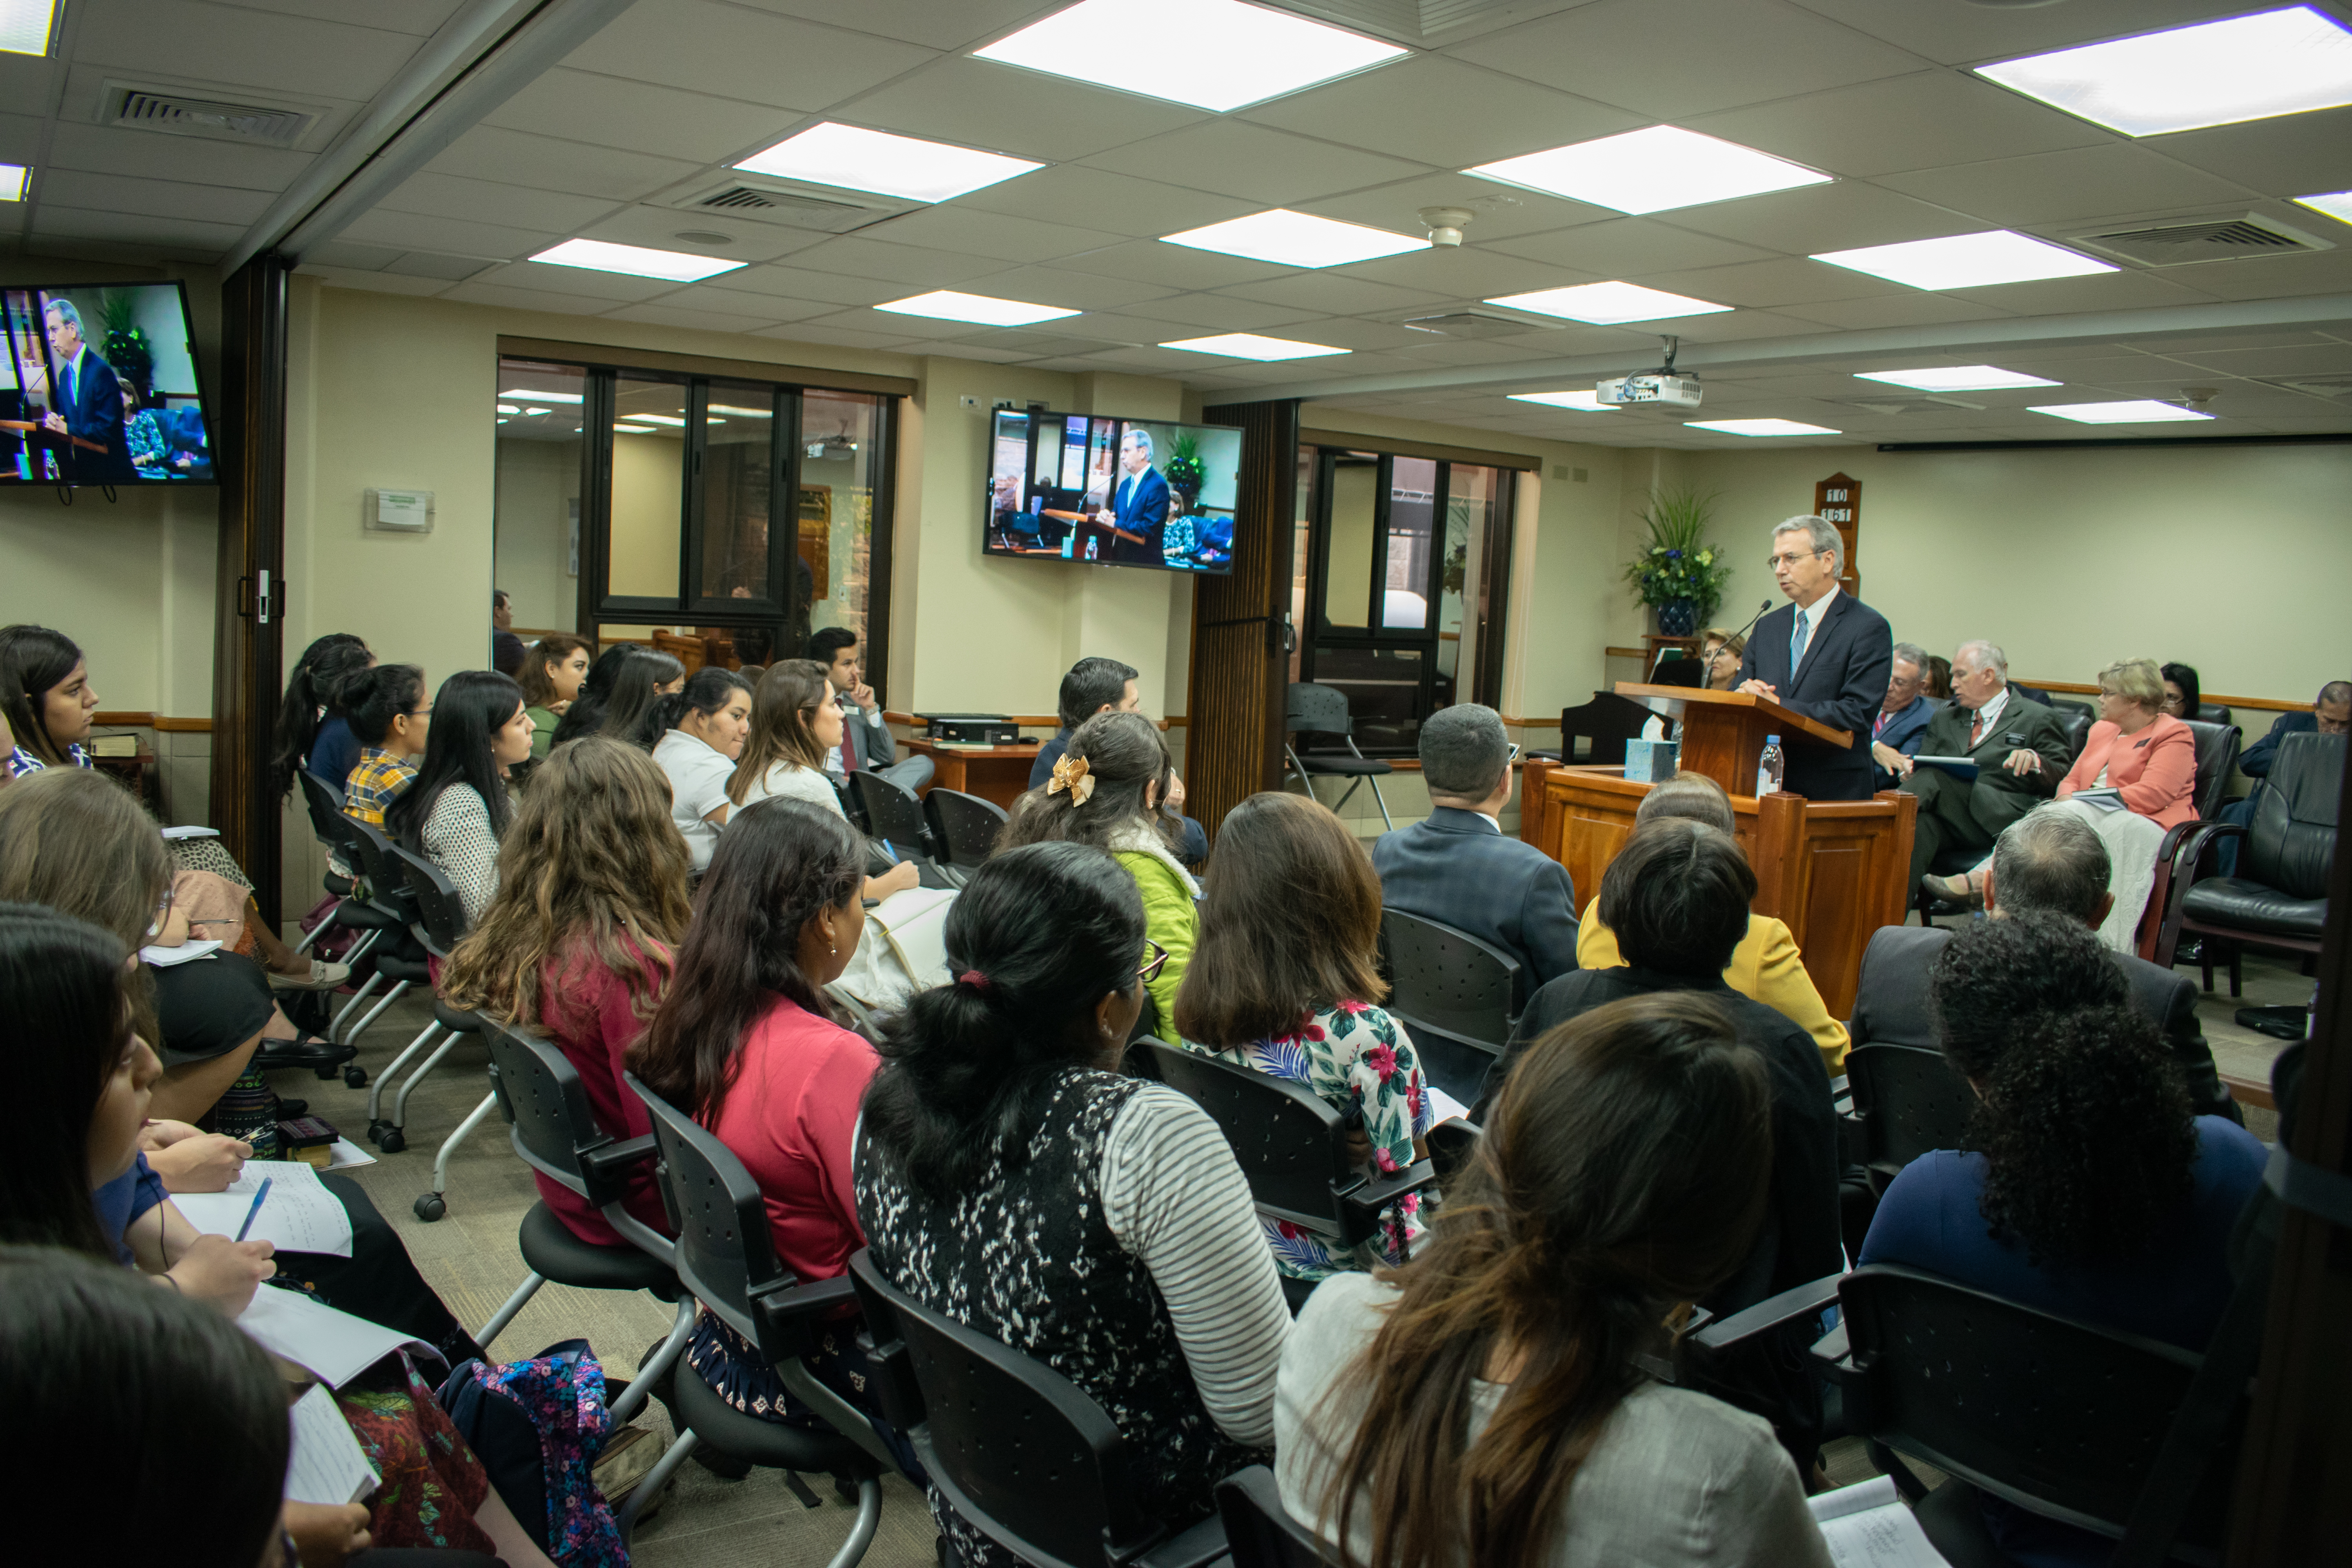 A missionary asks Elder Ulisses Soares of the Quorum of the Twelve Apostles a question during meeting in Costa Rica on Nov. 8, 2018.